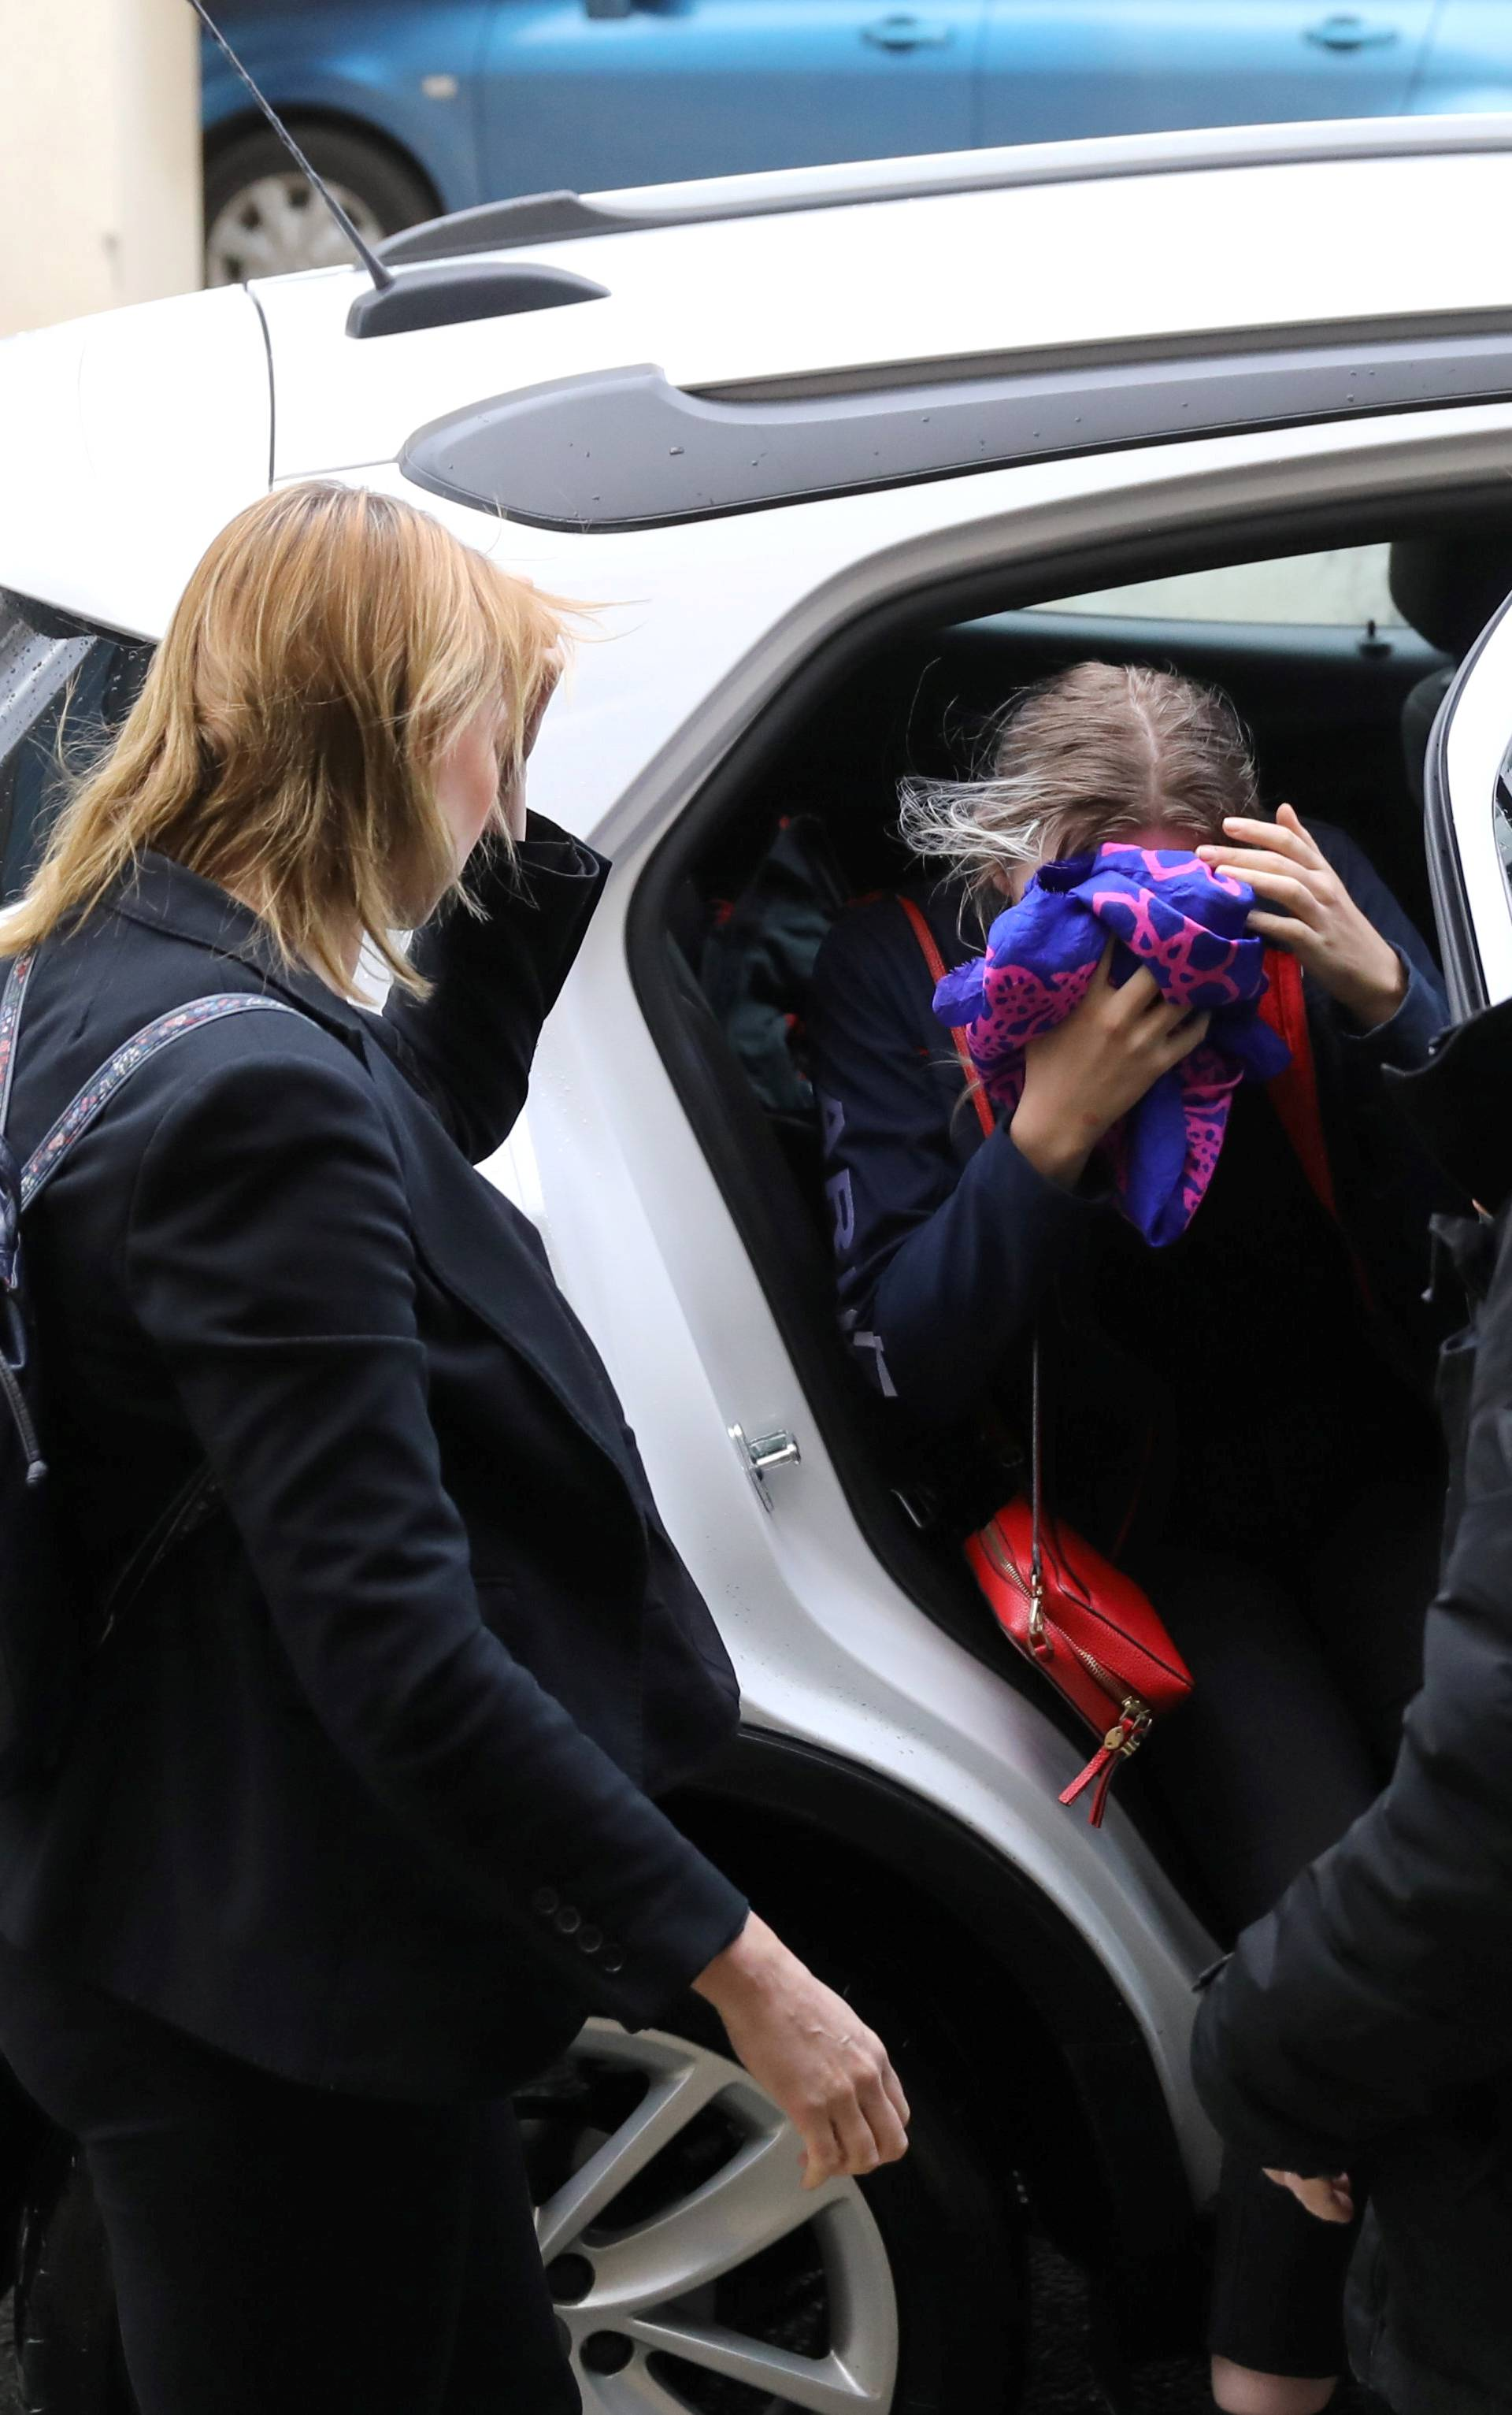 A British woman, accused of lying about being gang raped, covers her face as she arrives at the Famagusta courthouse in Paralimni